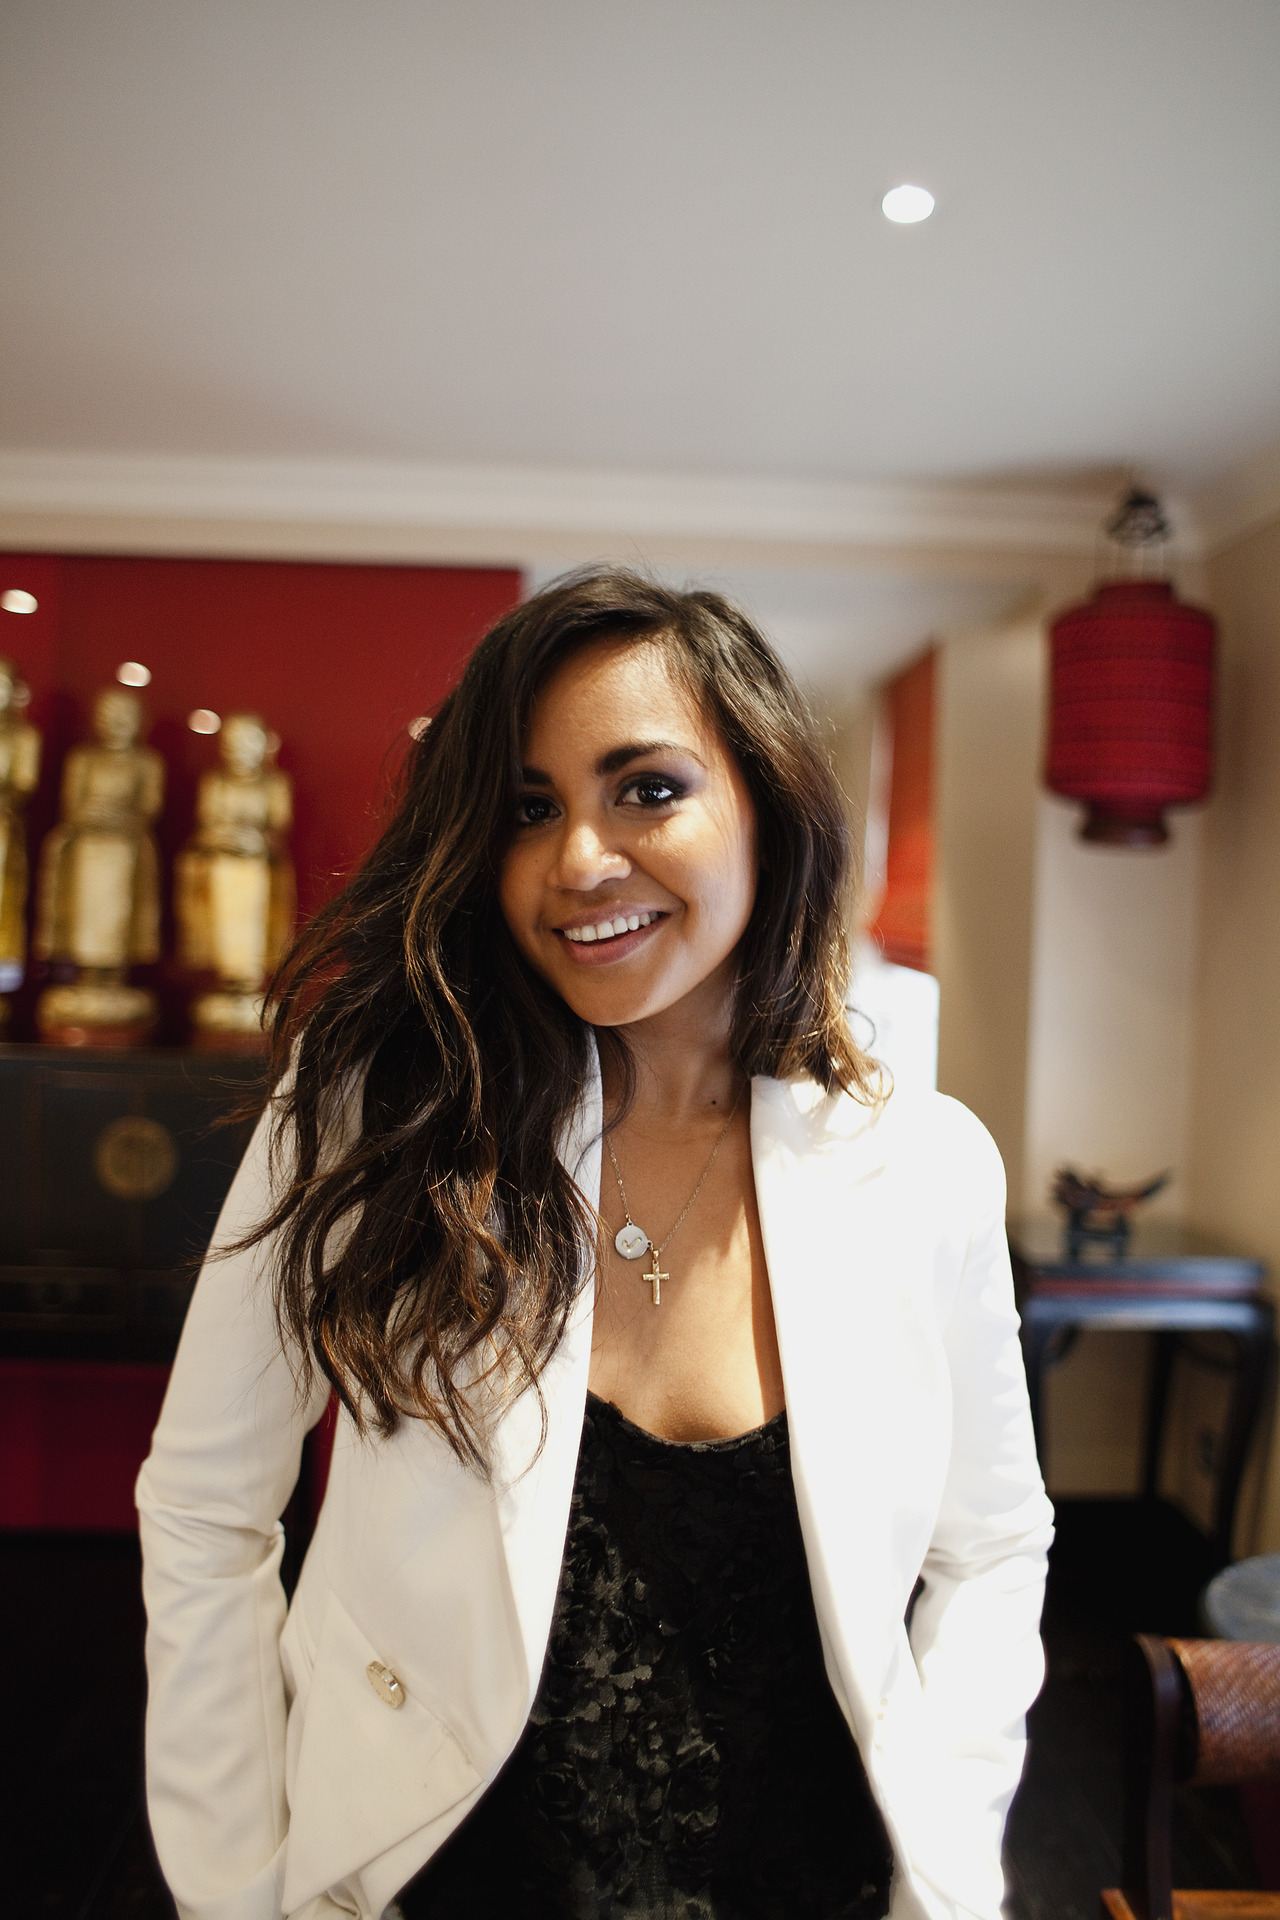 Jessica Mauboy Closet Confidential with actress and singer, Jessica Mauboy. Find the interview with her here;At Verge magazine.